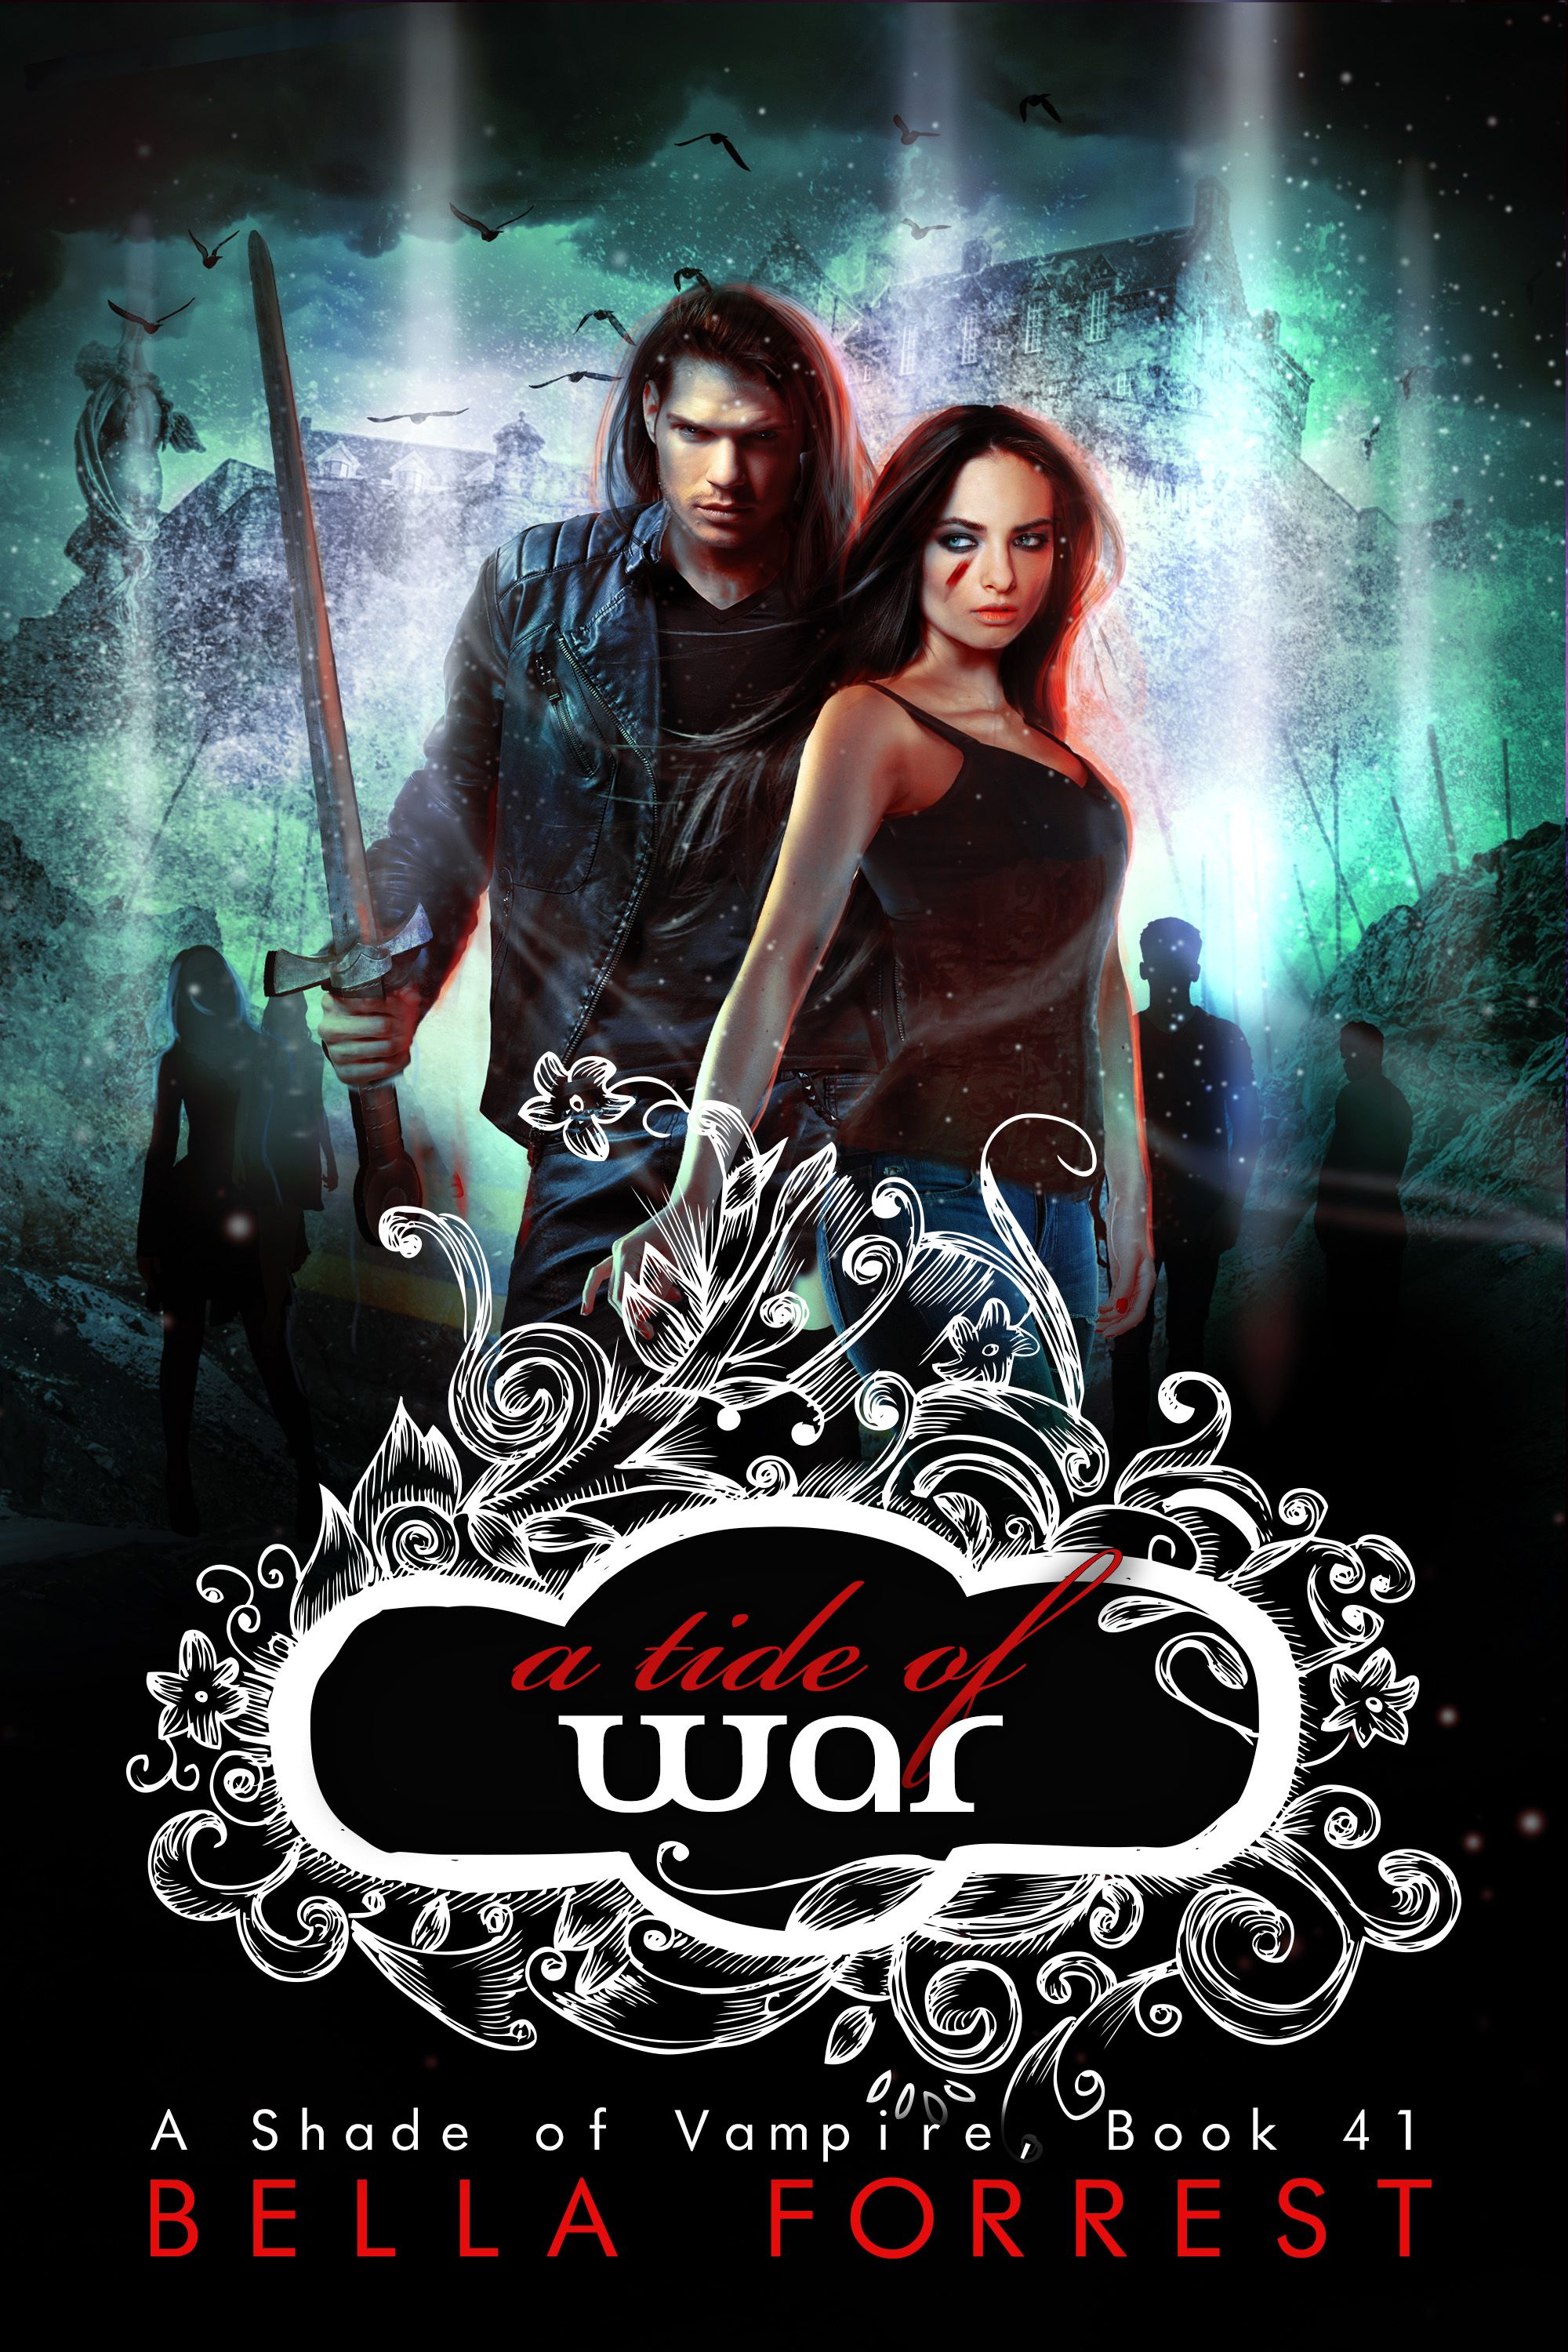 A Shade Of Vampire: A Tide Of War (book 41) >